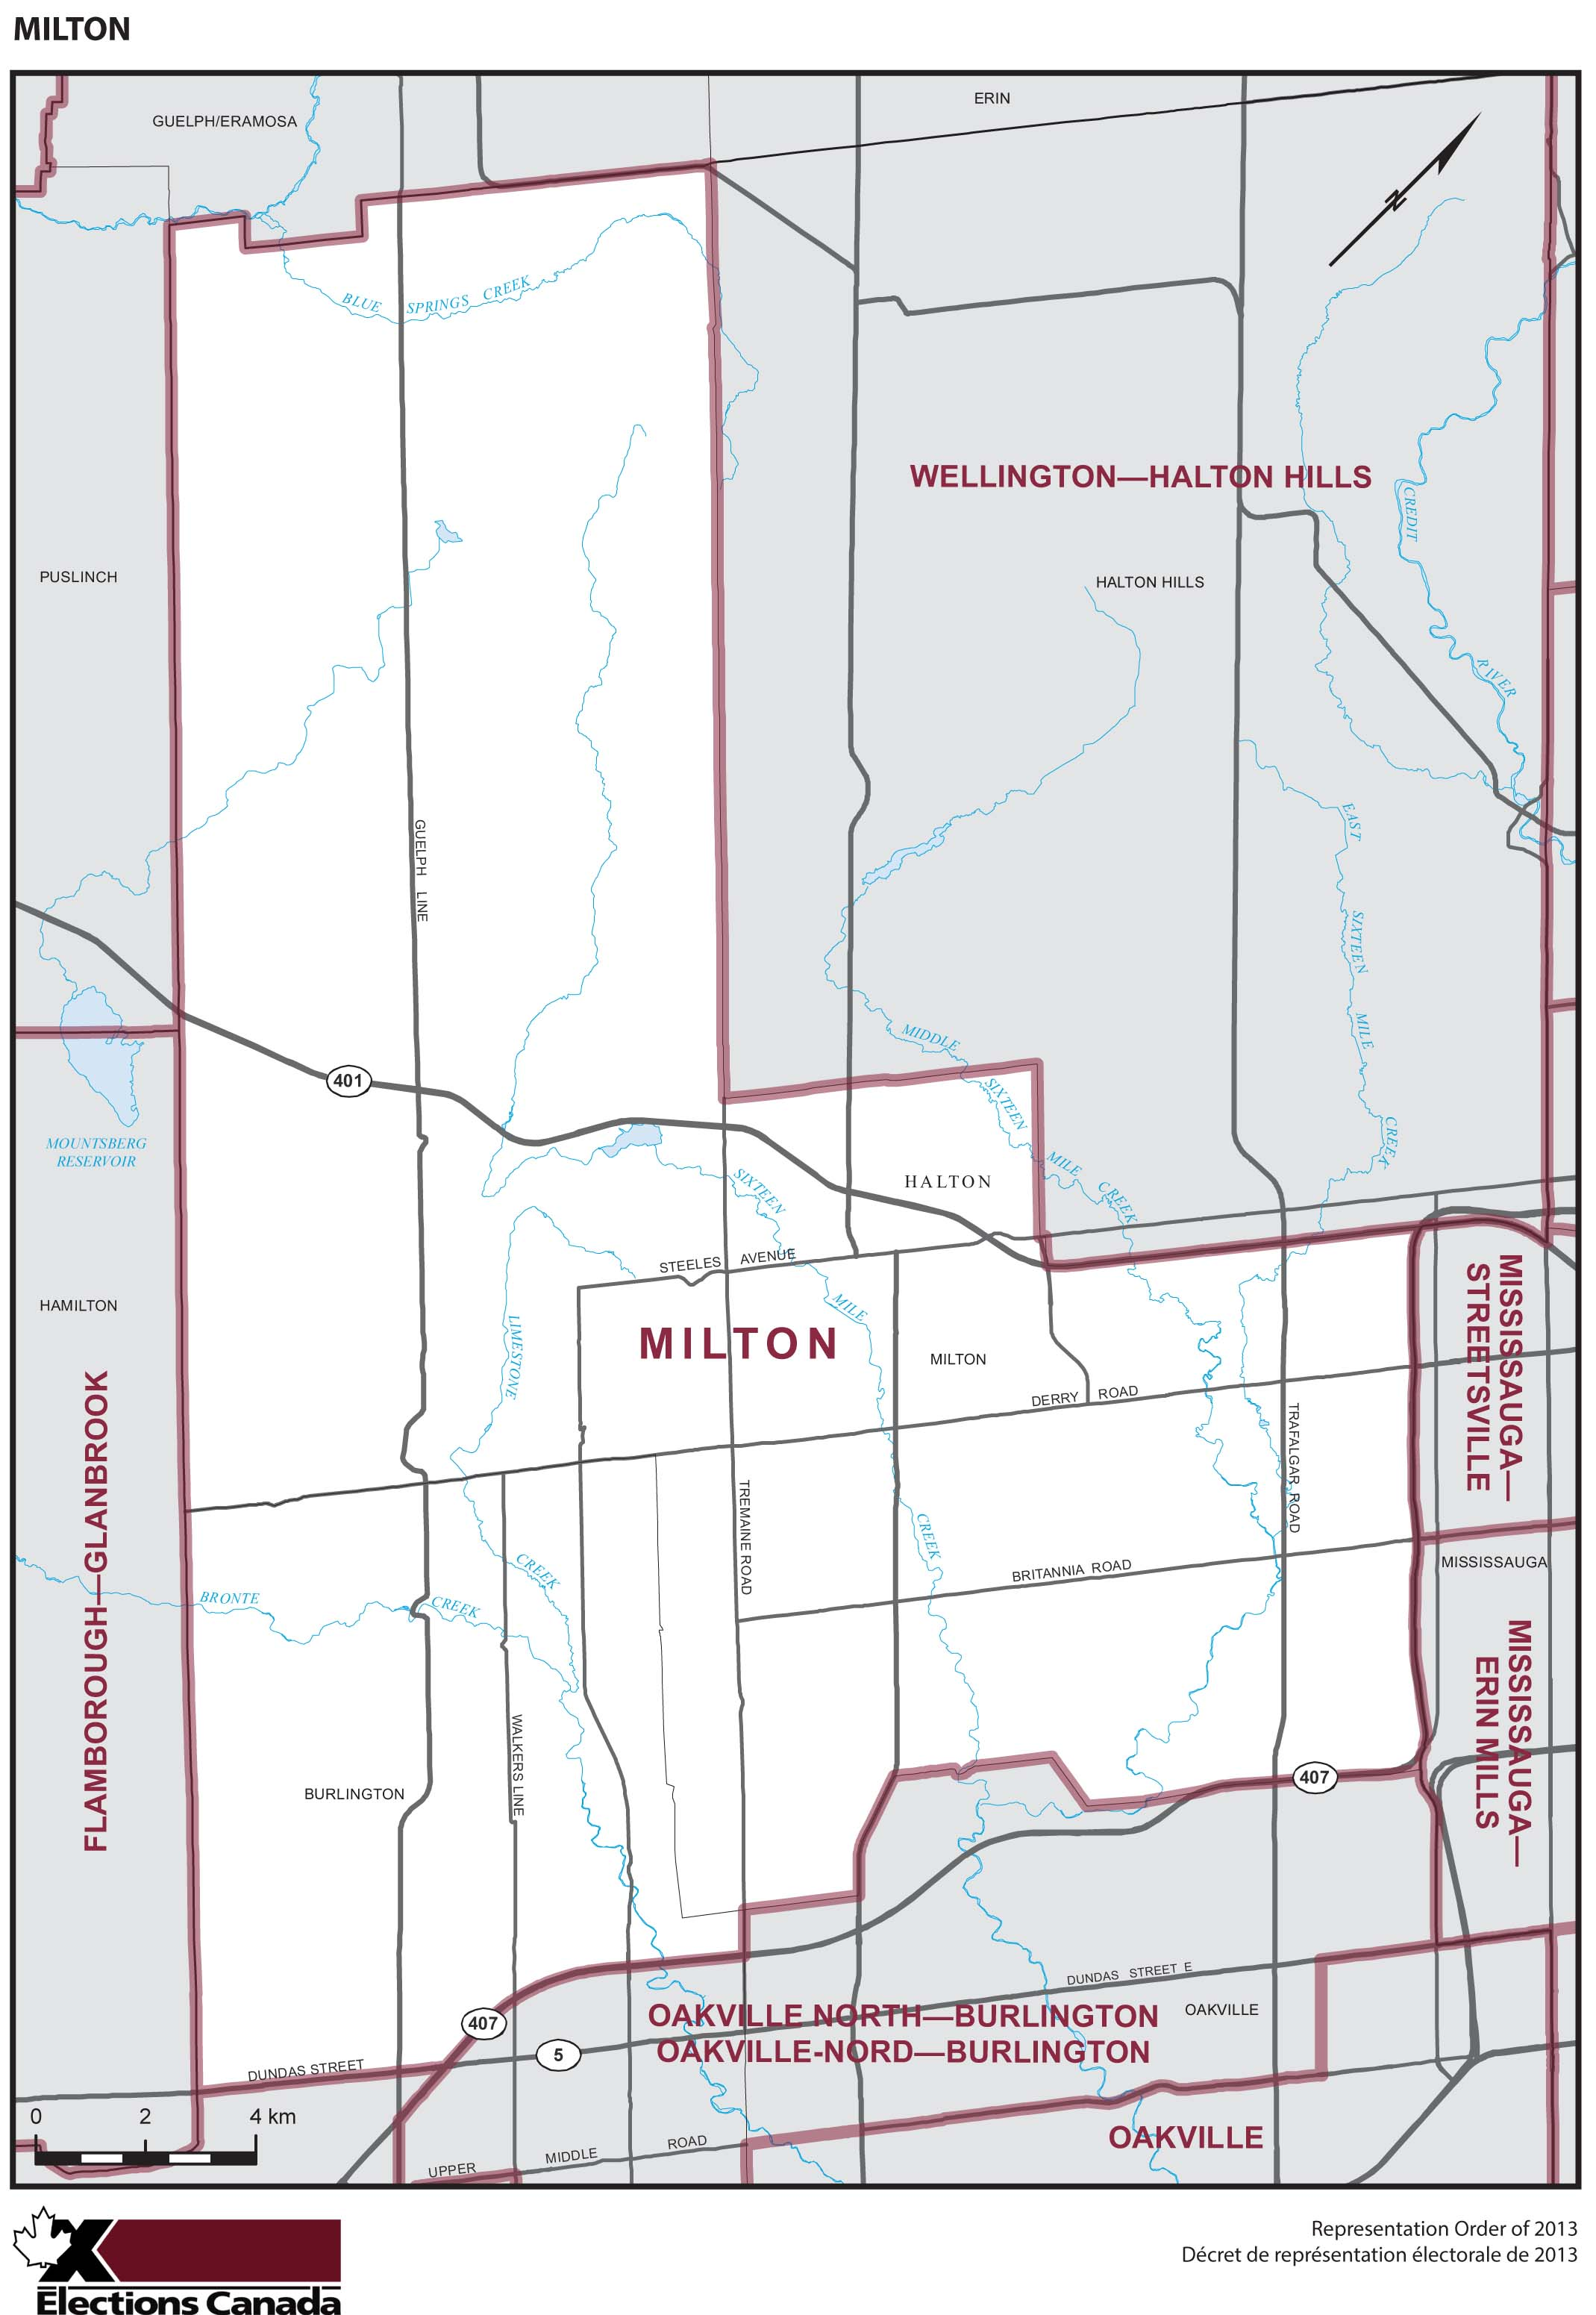 Map: Milton, Federal electoral district, 2013 Representation Order (in white), Ontario